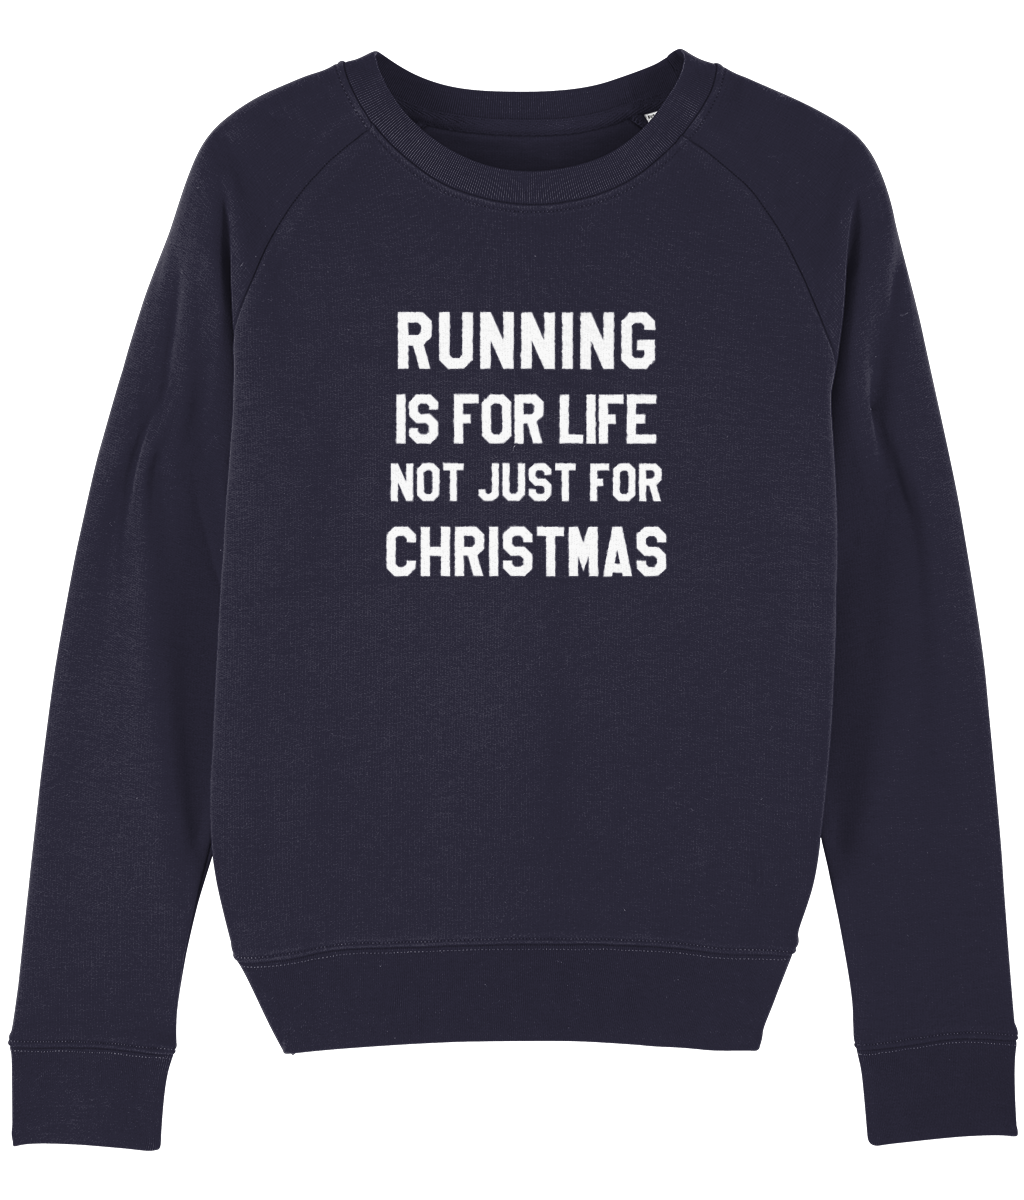 Running is for Life, Not Just for Christmas Sweater - Track and Fit Club